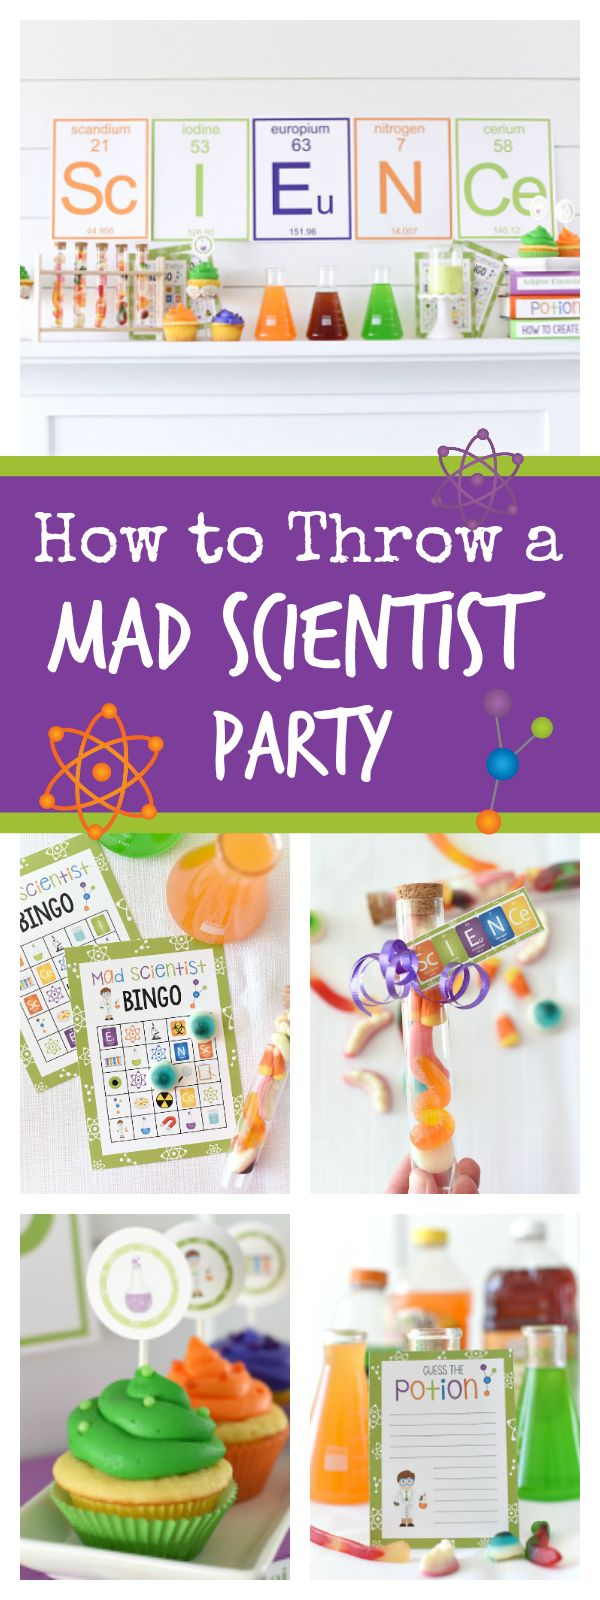 How to Throw a Fun Mad Scientist Party